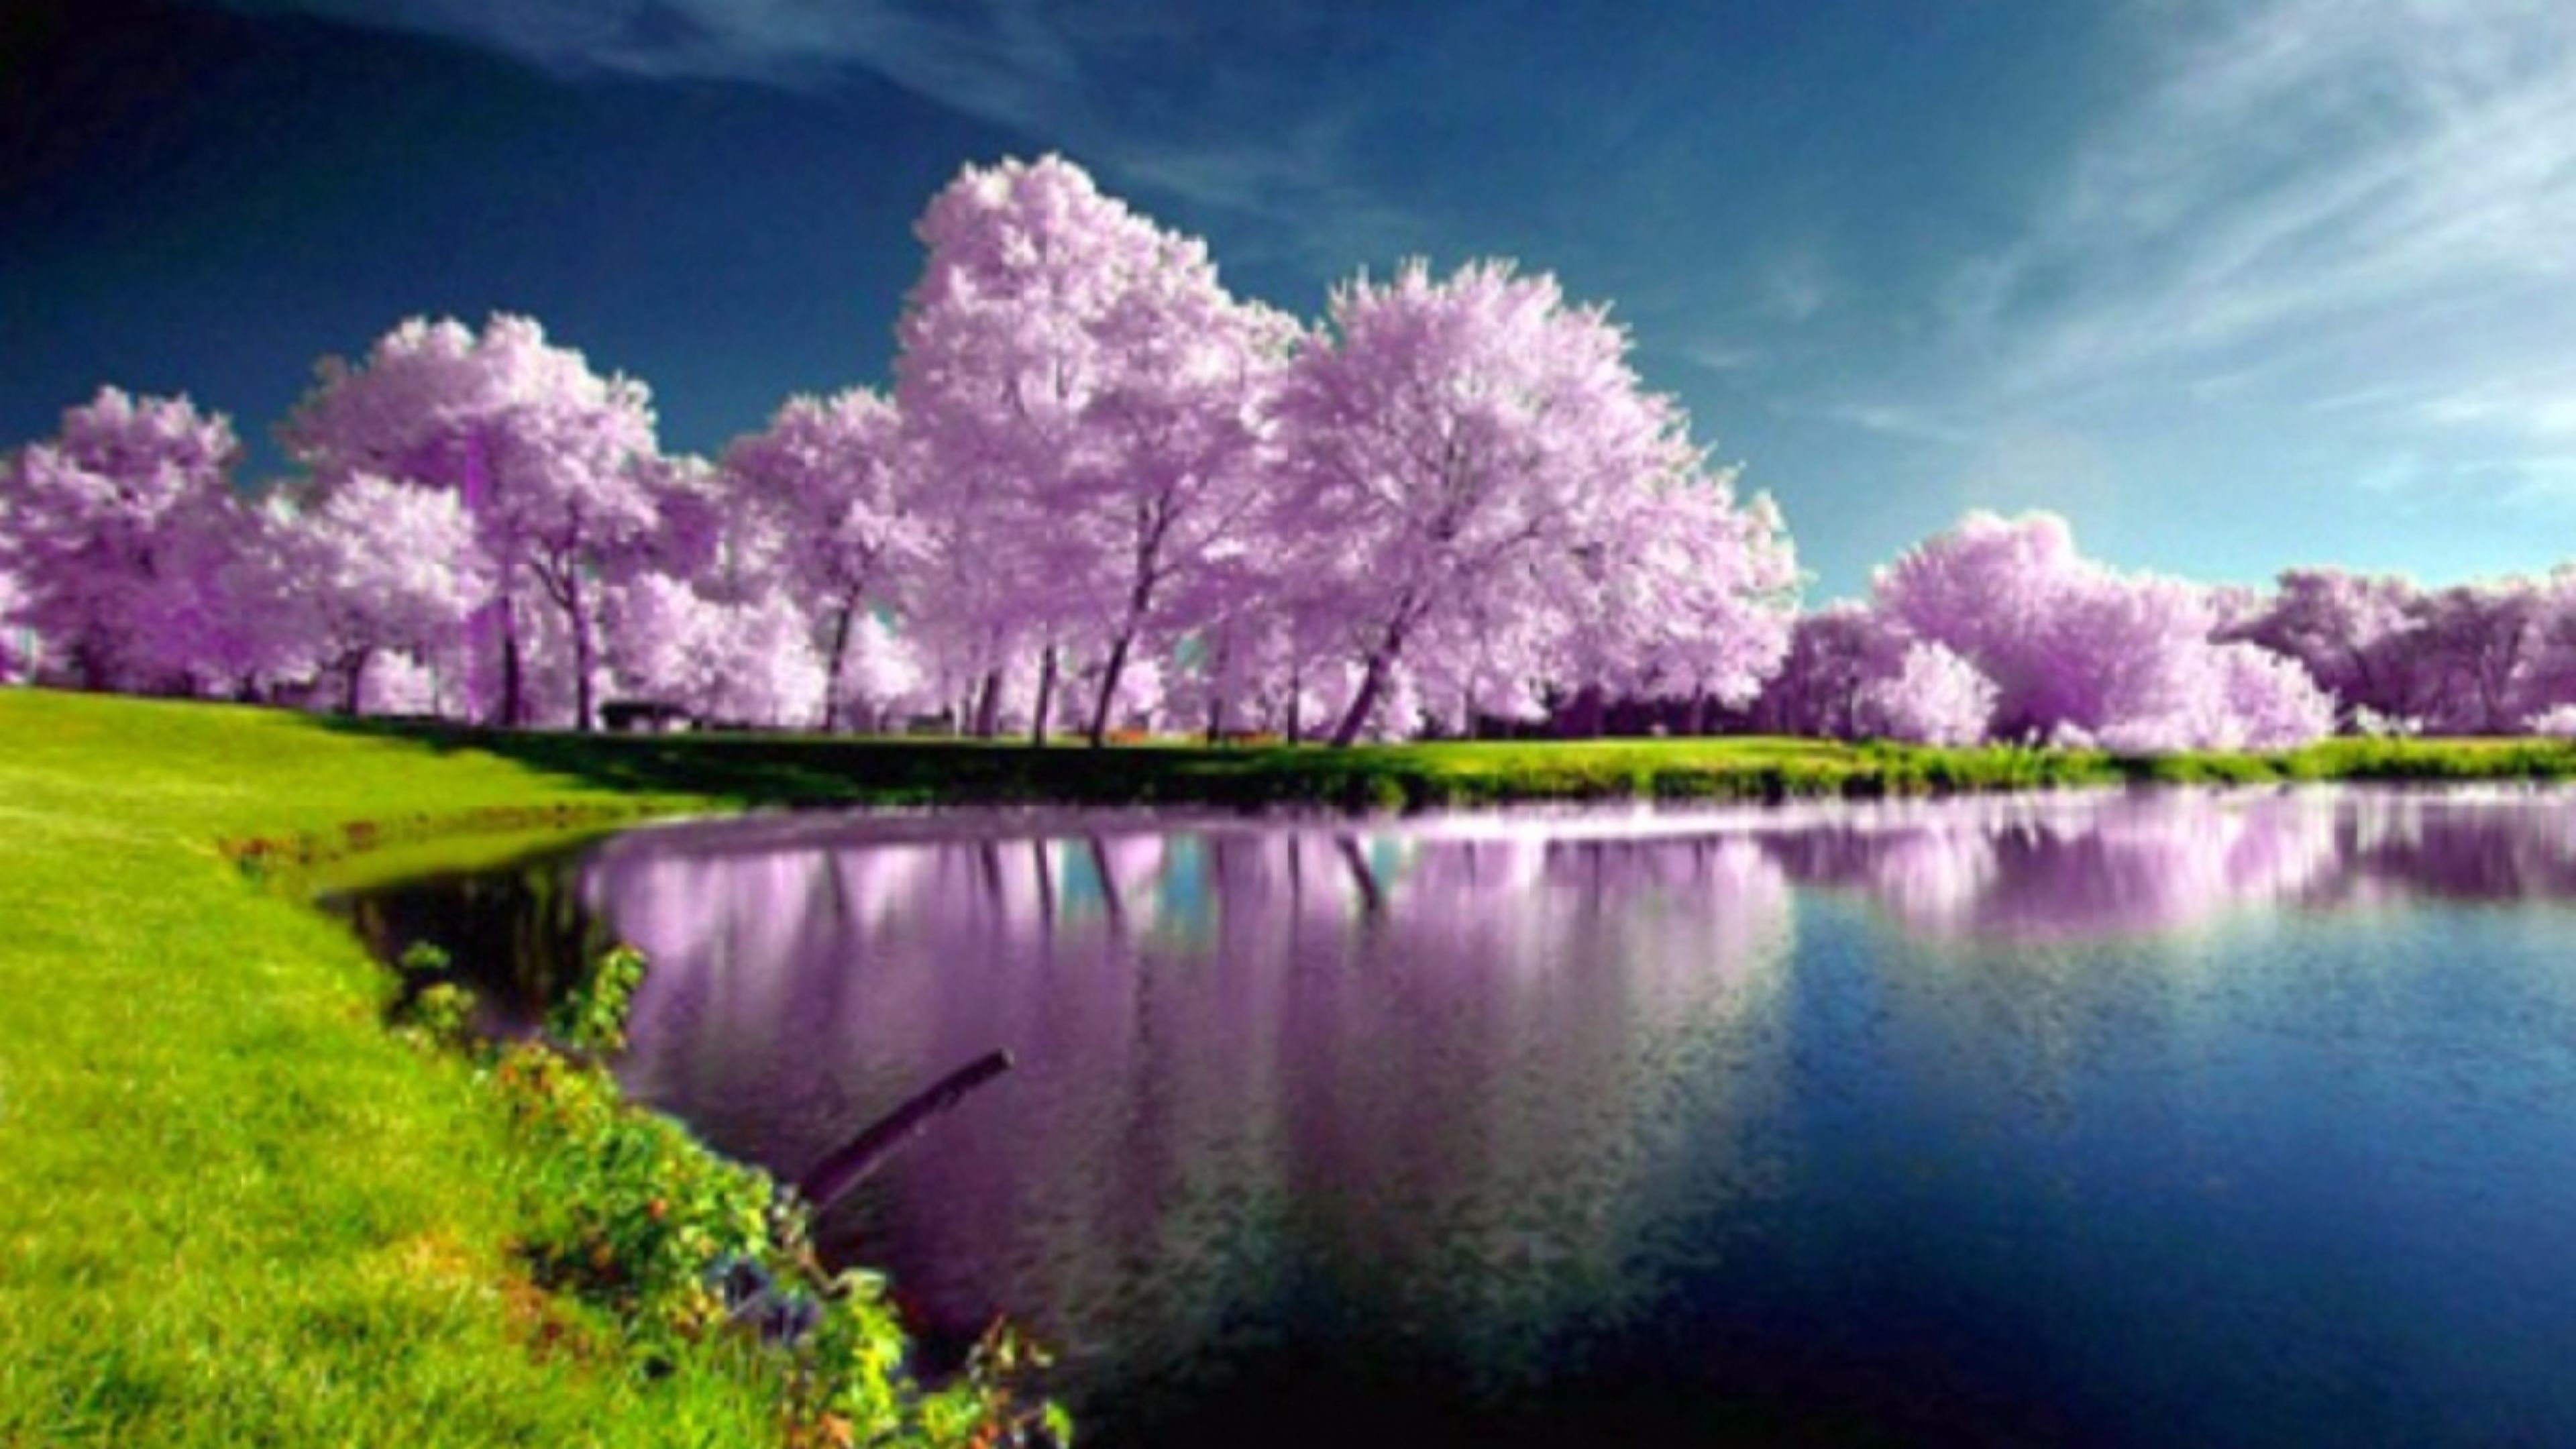 Purple Trees Nature wallpaper